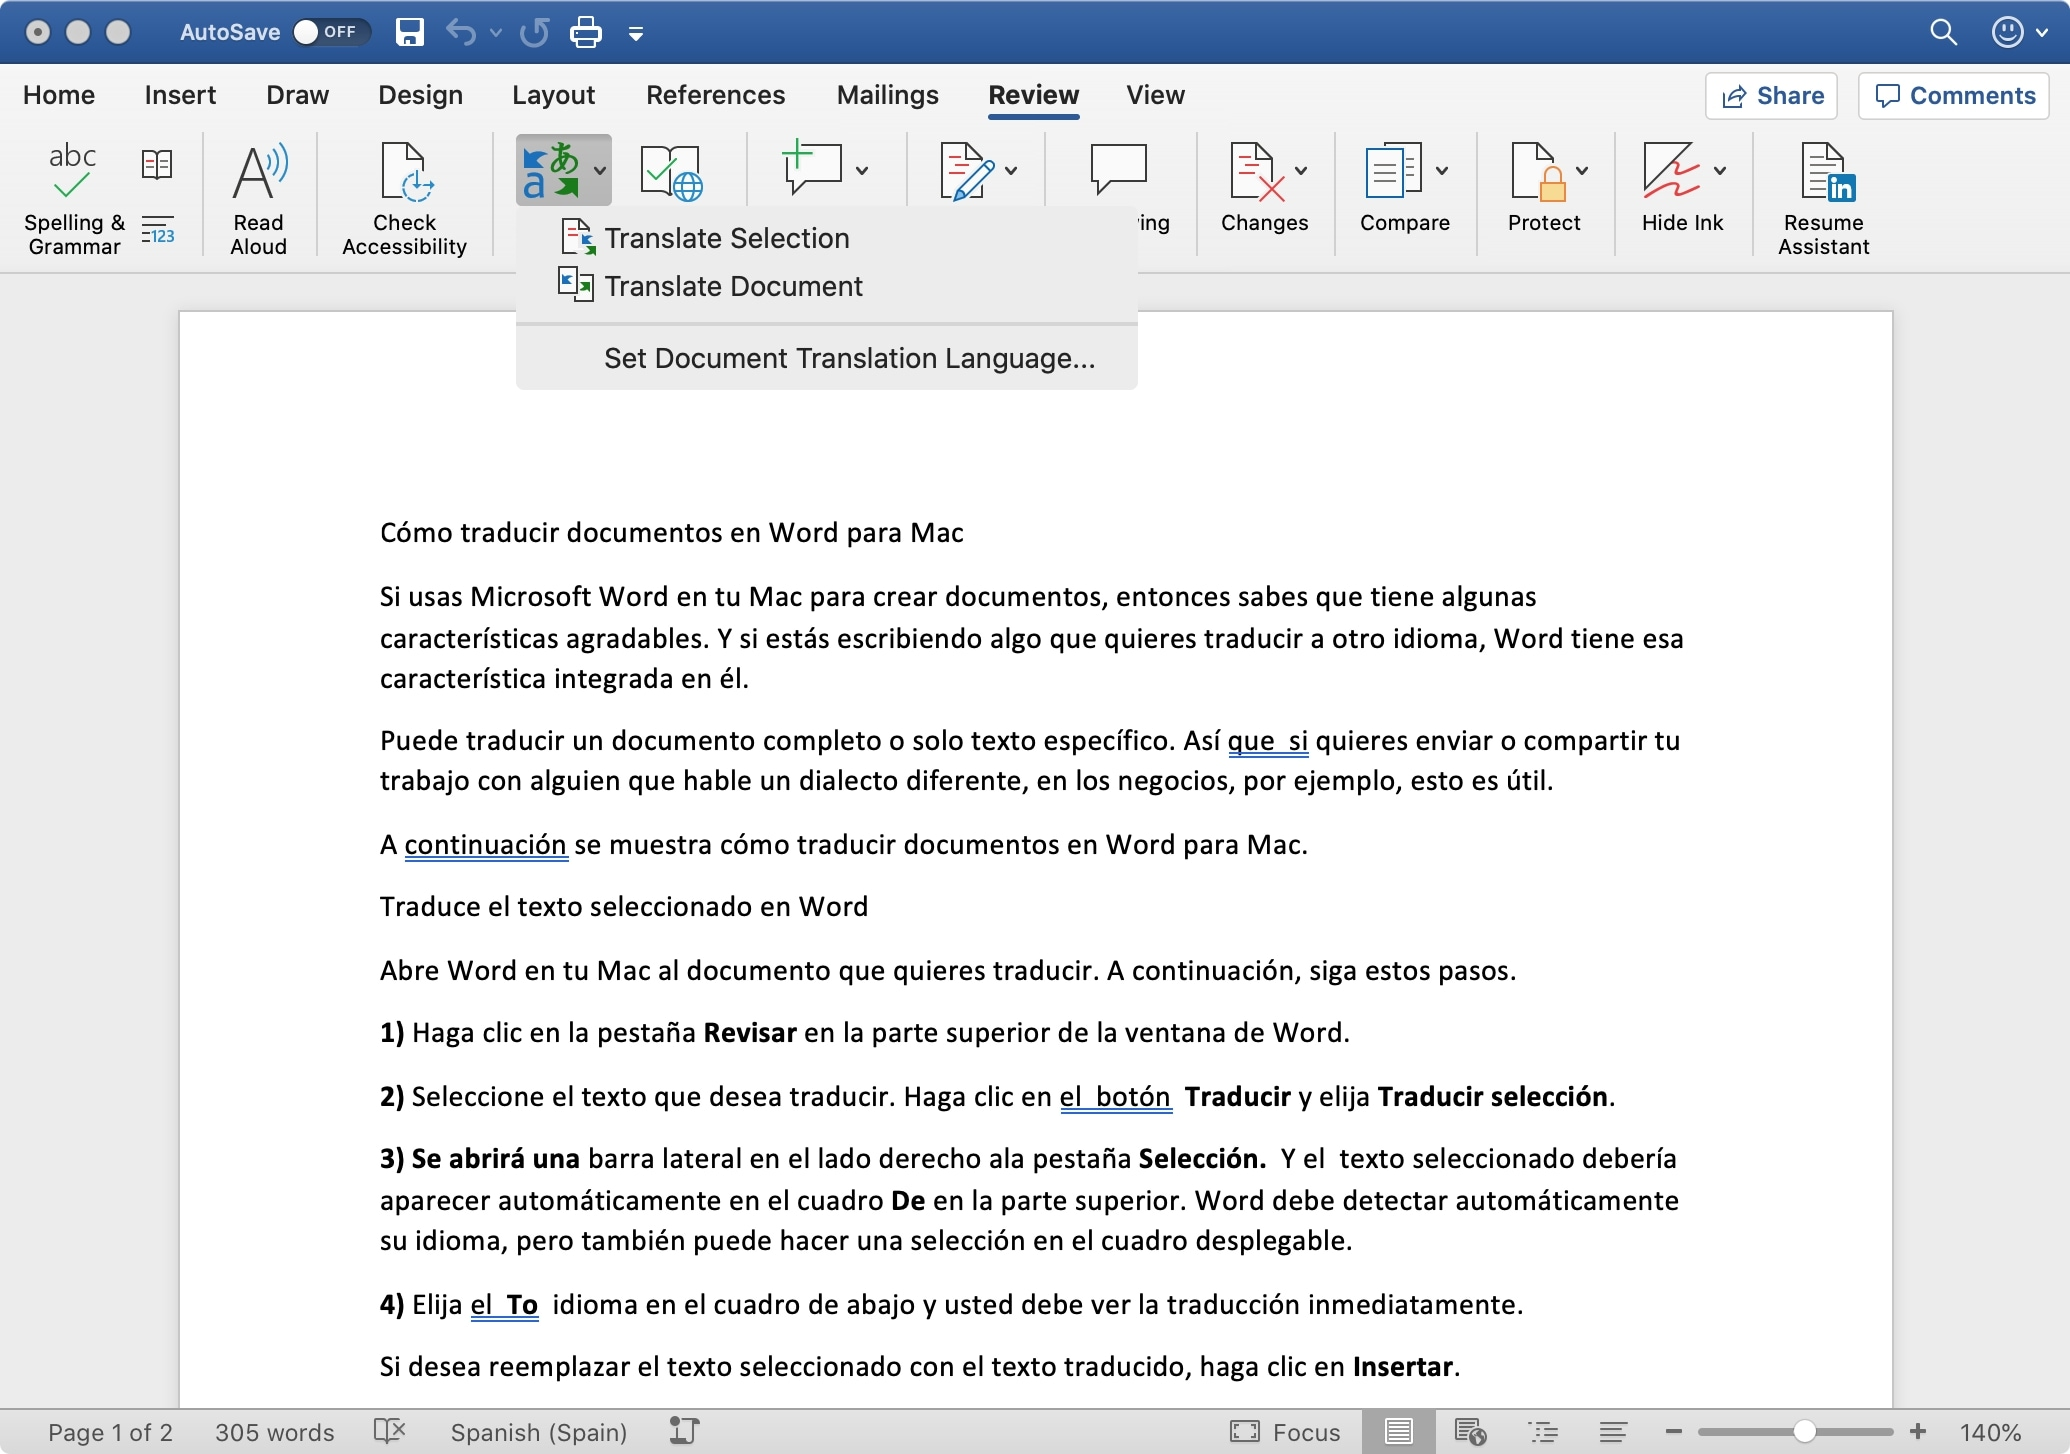 Word Translate Document on Mac